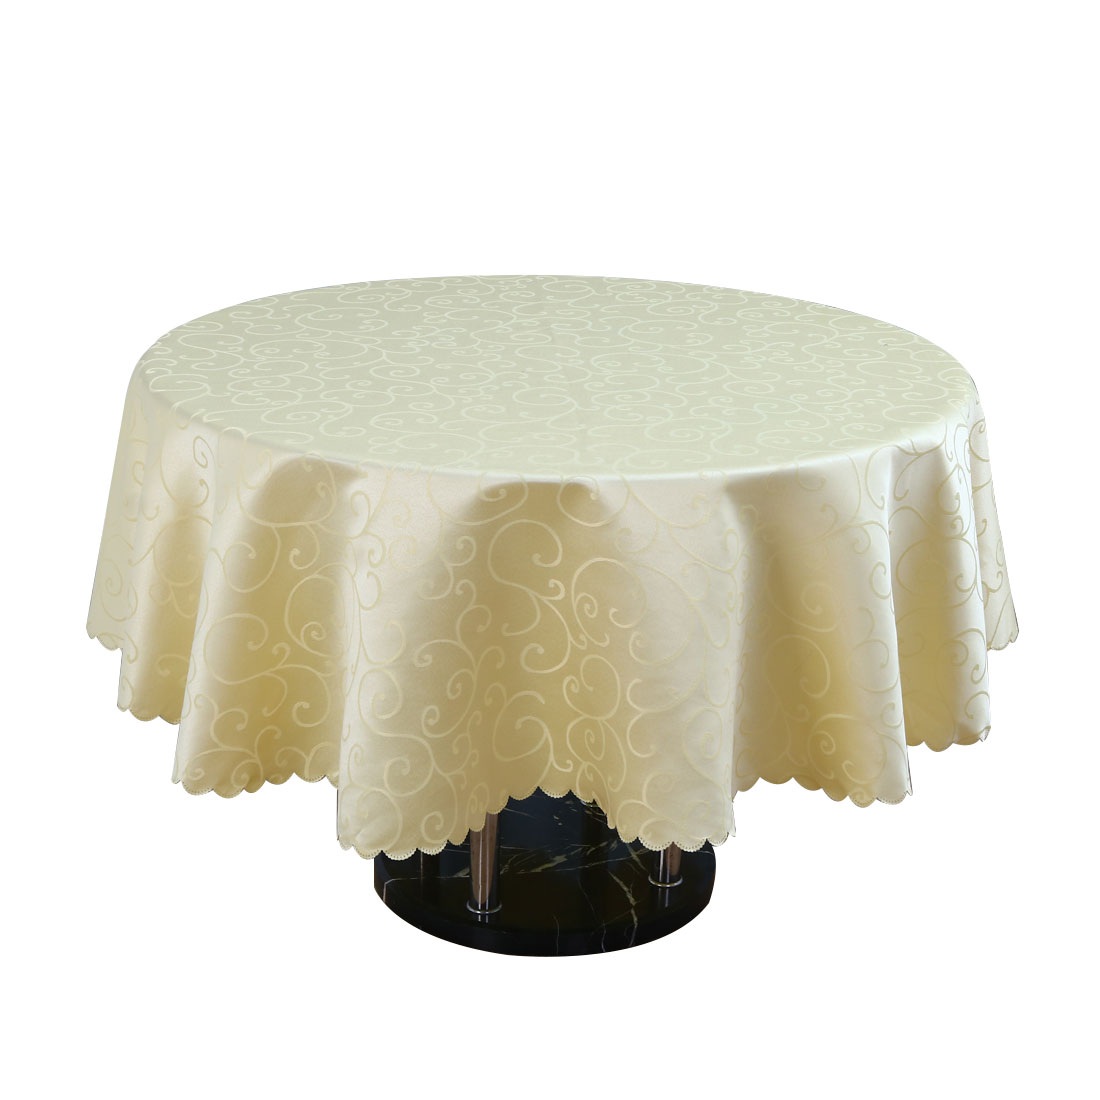 "Polyester Round Flower Pattern Tablecloth Water Stain Resistant Yellow 71"" Dia - image 4 of 4"